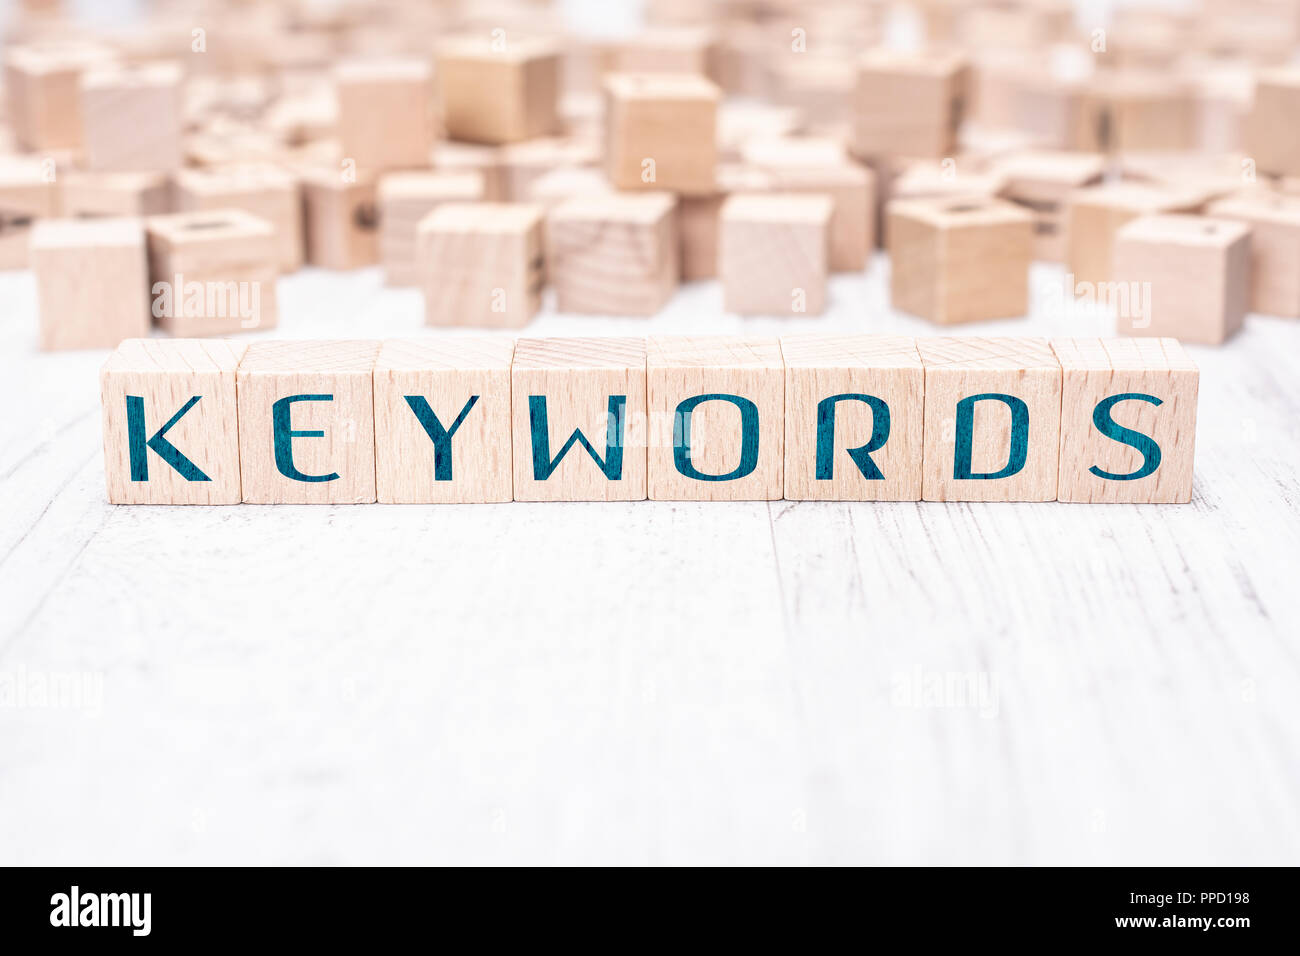 The Word Keywords Formed By Wooden Blocks On A White Table - Stock Image